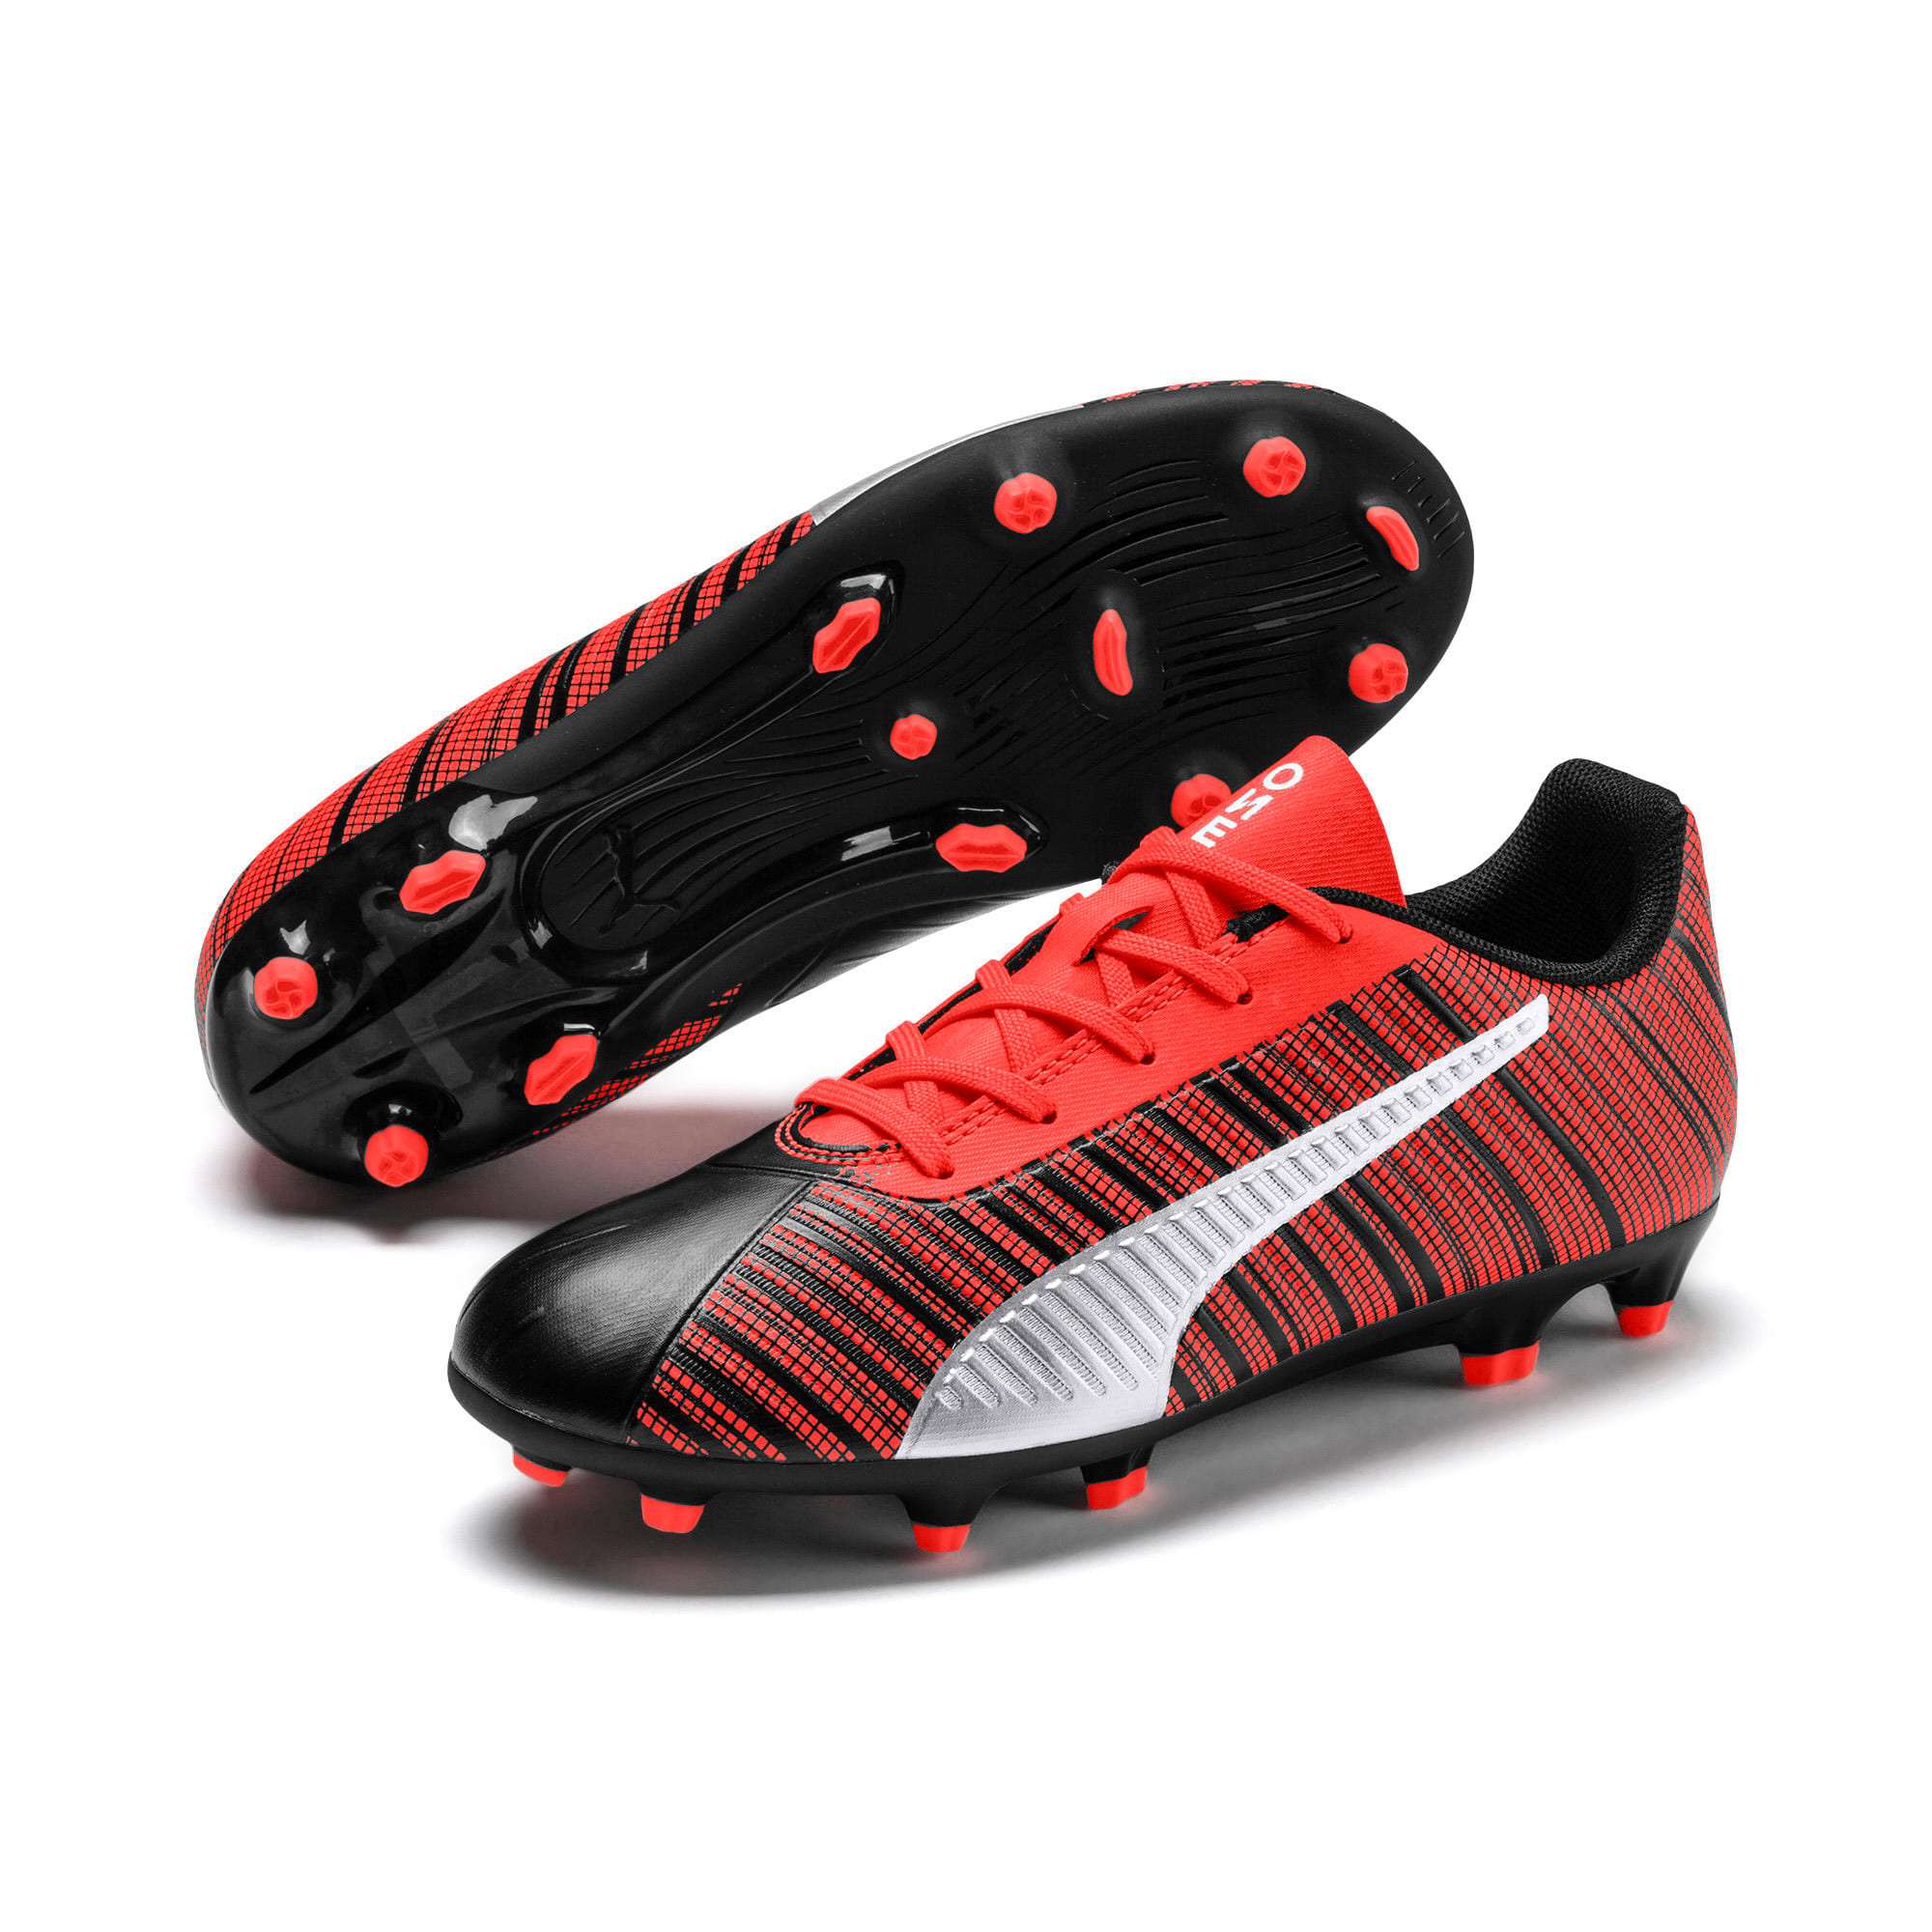 PUMA ONE 5.4 IT Youth Football Boots, Black-Nrgy Red-Aged Silver, large